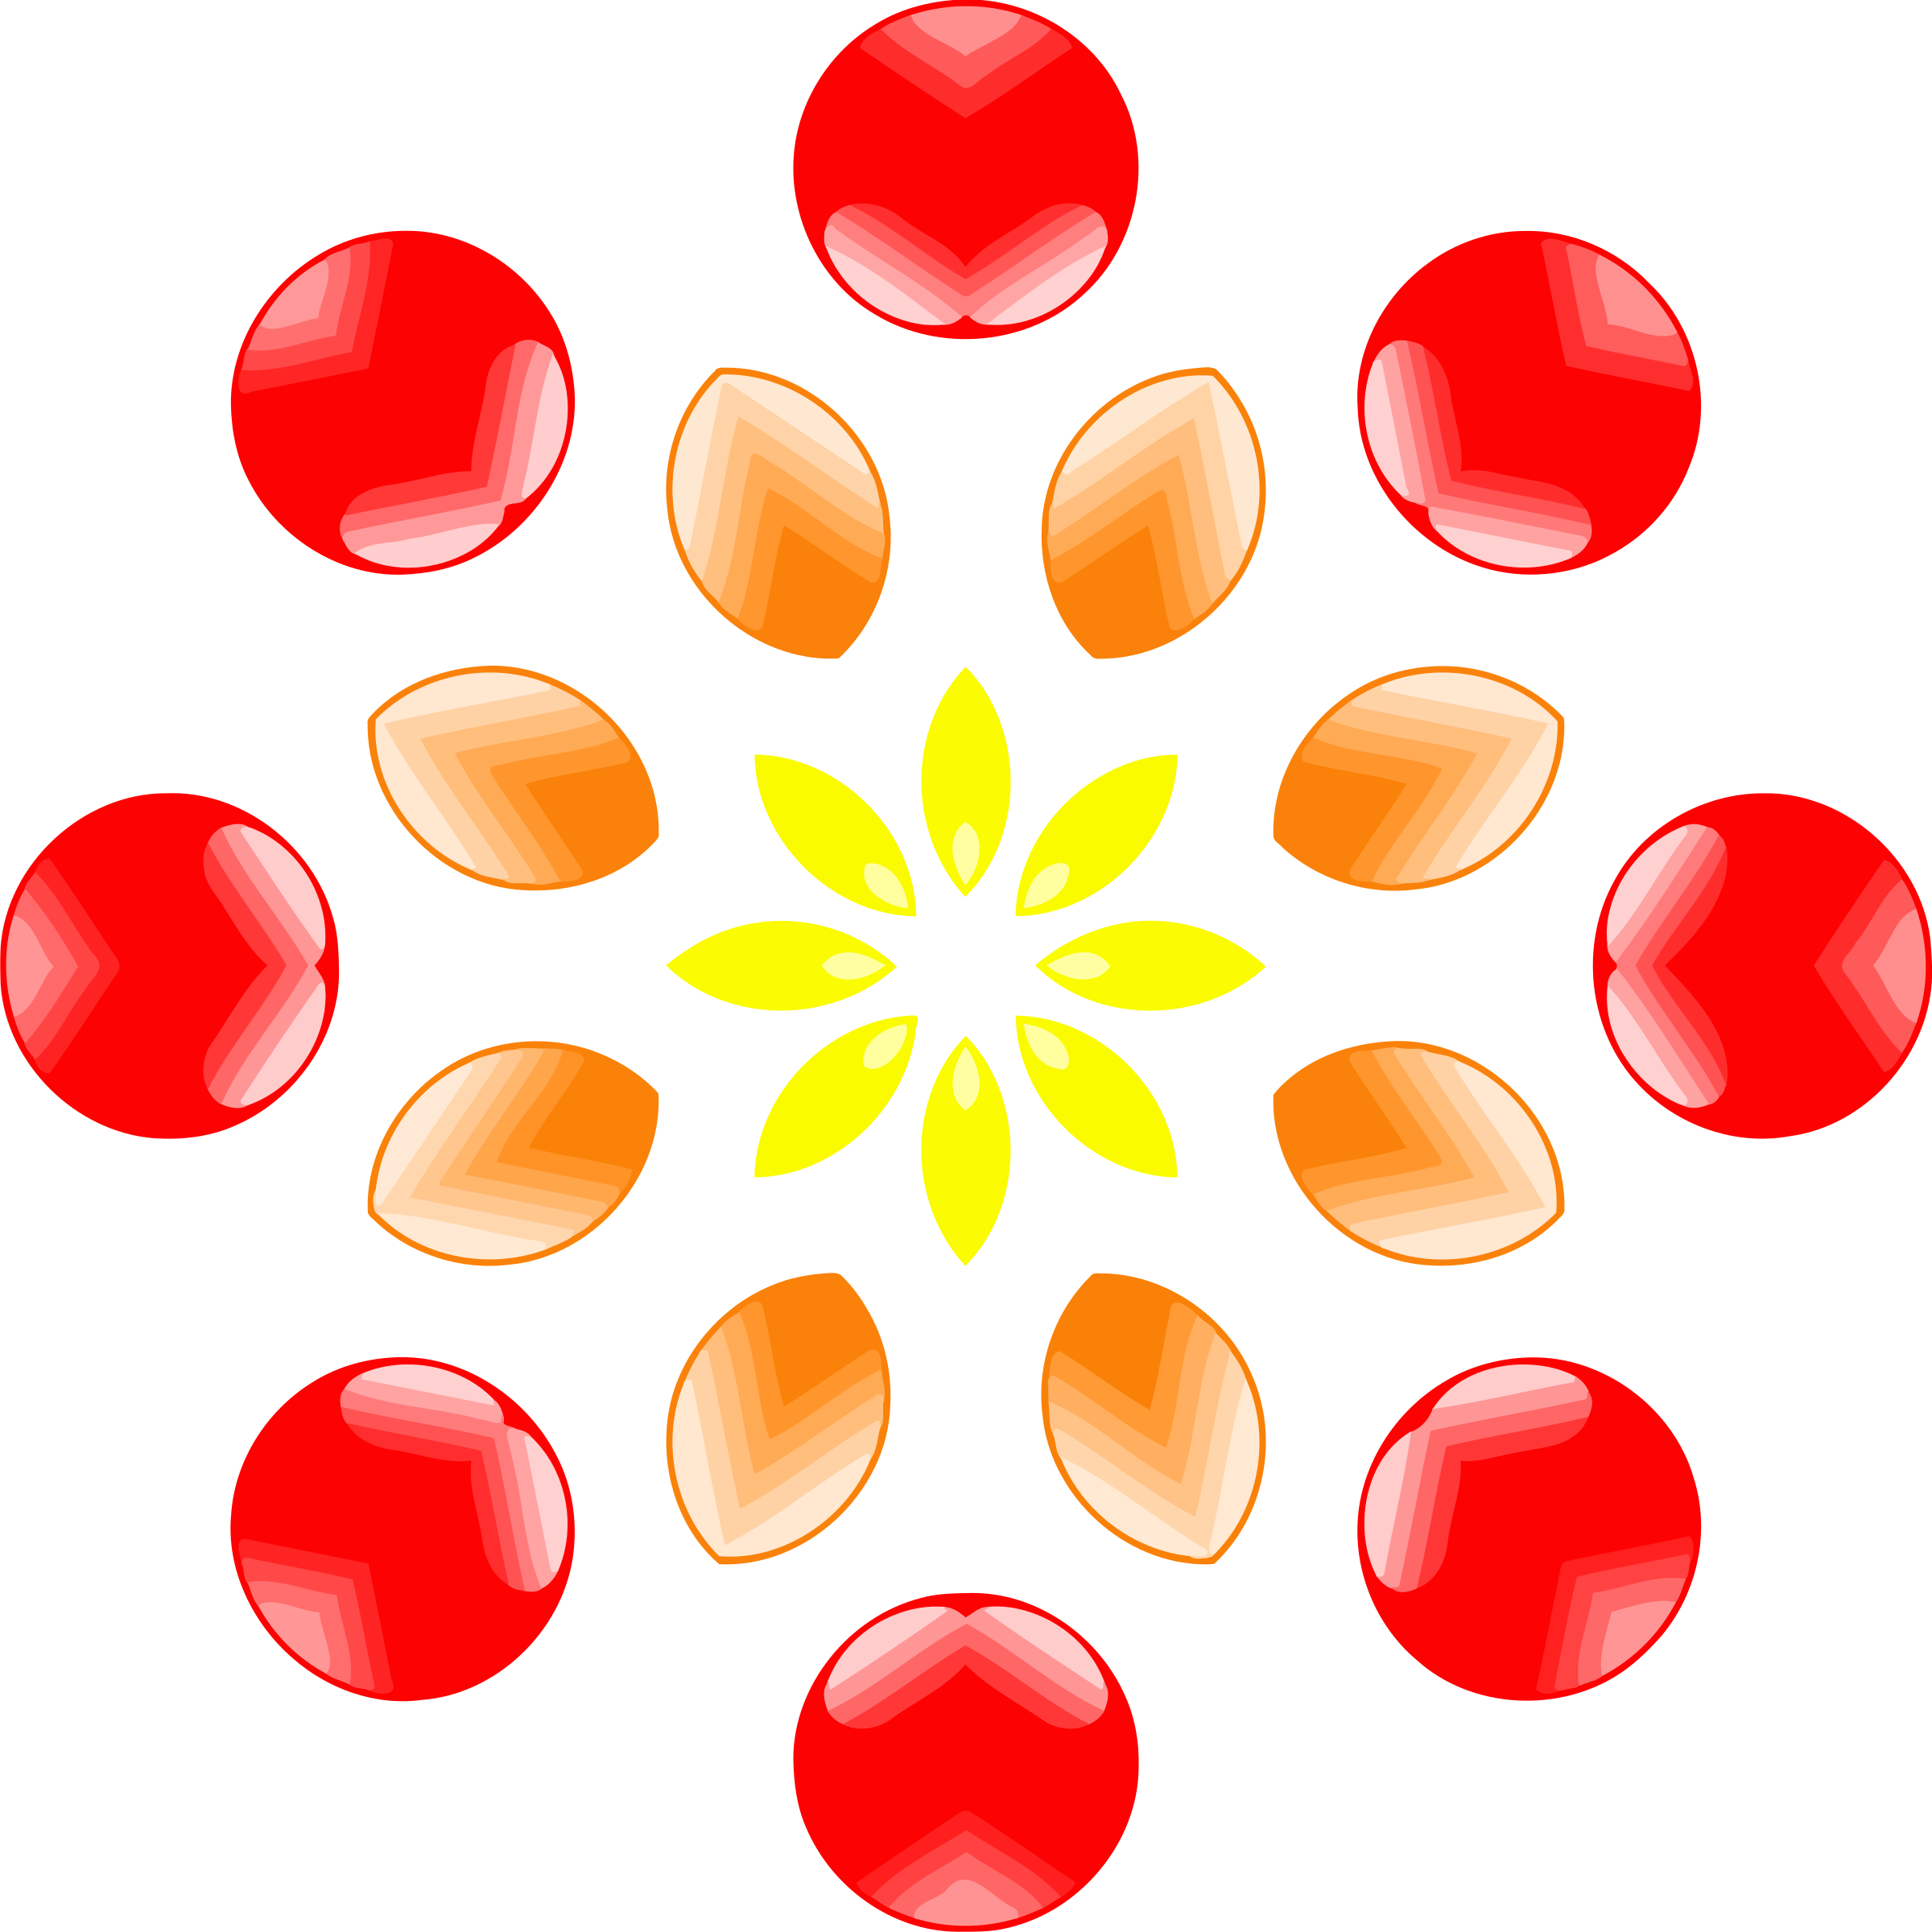 Red Flower clipart abstract #5